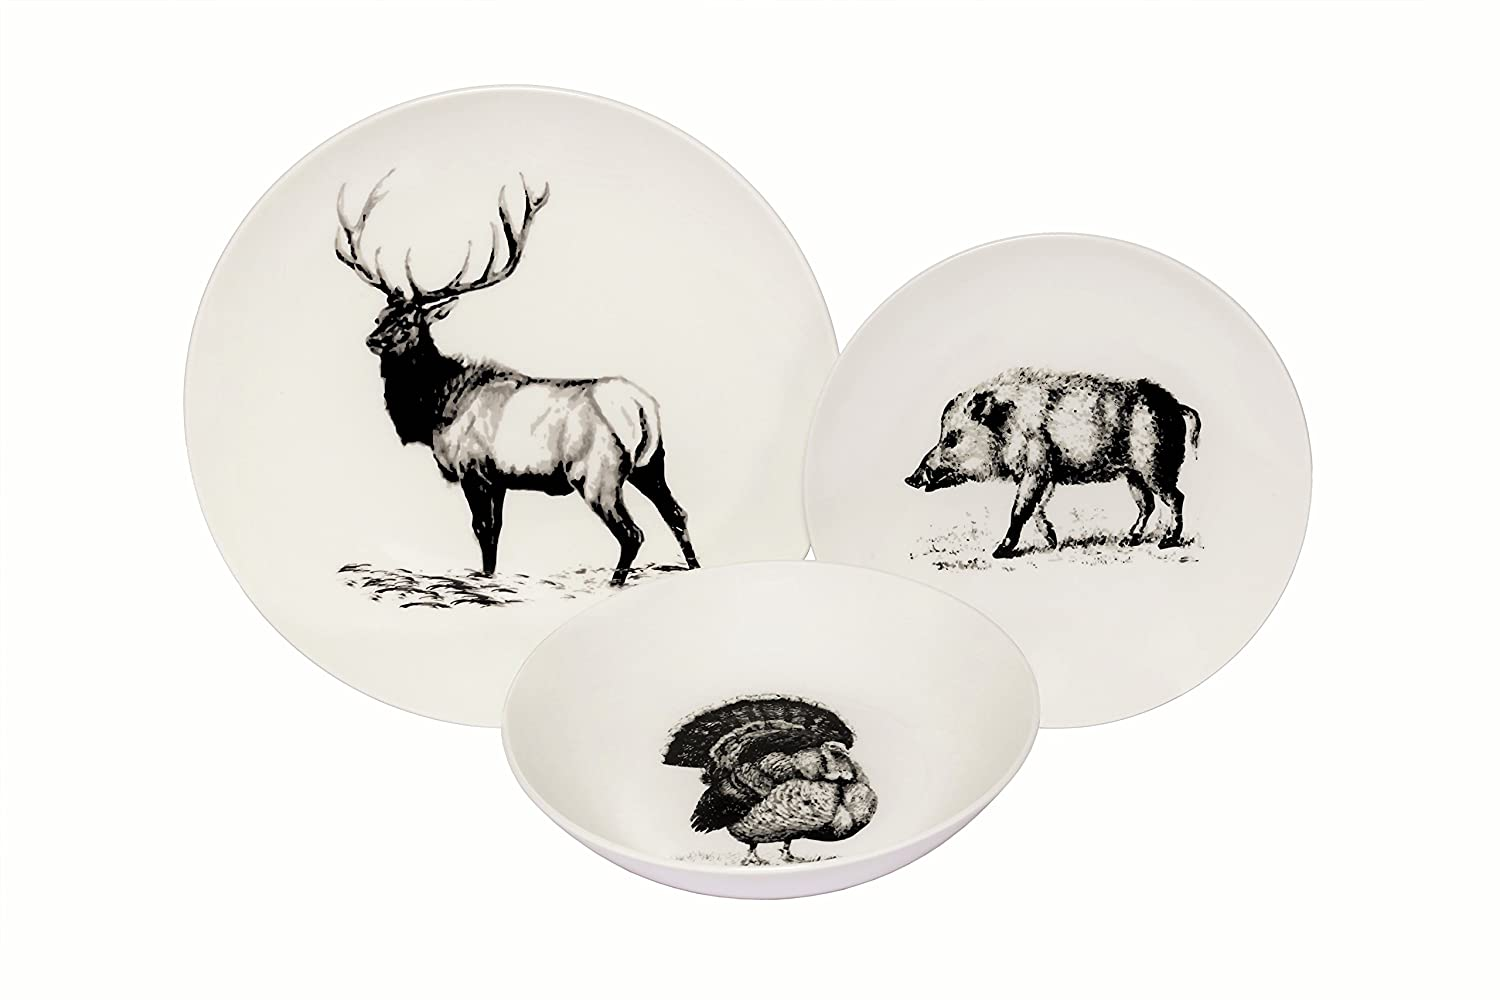 Melange Coupe 36 Piece Porcelain Dinnerware Set Wild Animals | Service for 12 | Microwave Dishwasher Oven Safe | Dinner Plate Salad Plate Soup Bowl 12 Each